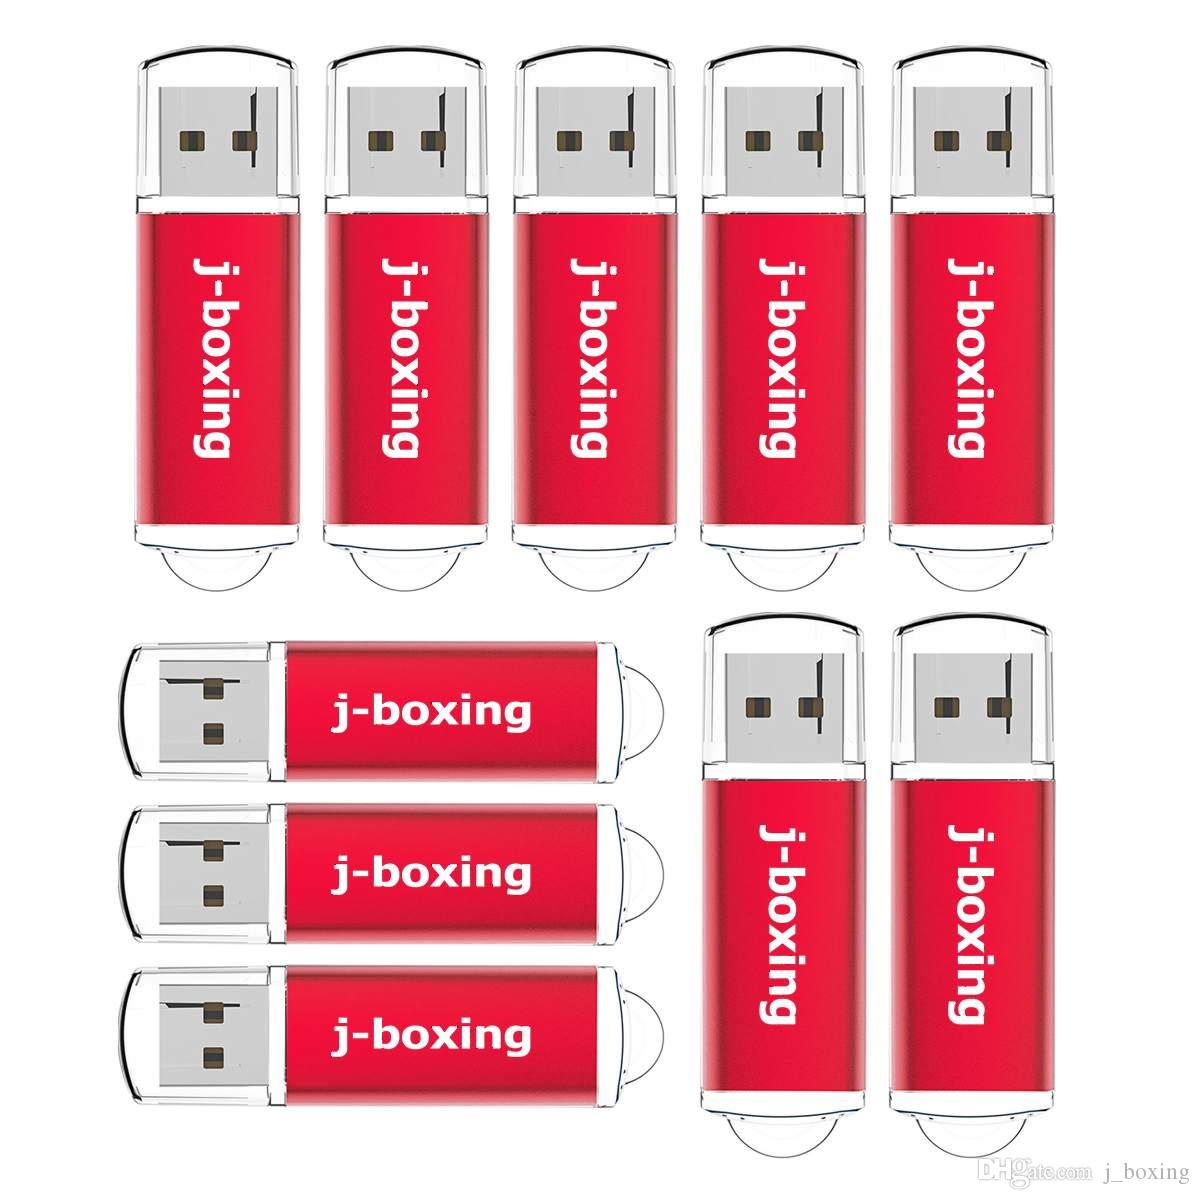 10PCS/LOT 16GB USB 2.0 Flash Drives Rectangle Flash Memory Stick Thumb Storage Pendrives Promotion Gifts Colorful for Computer Laptop